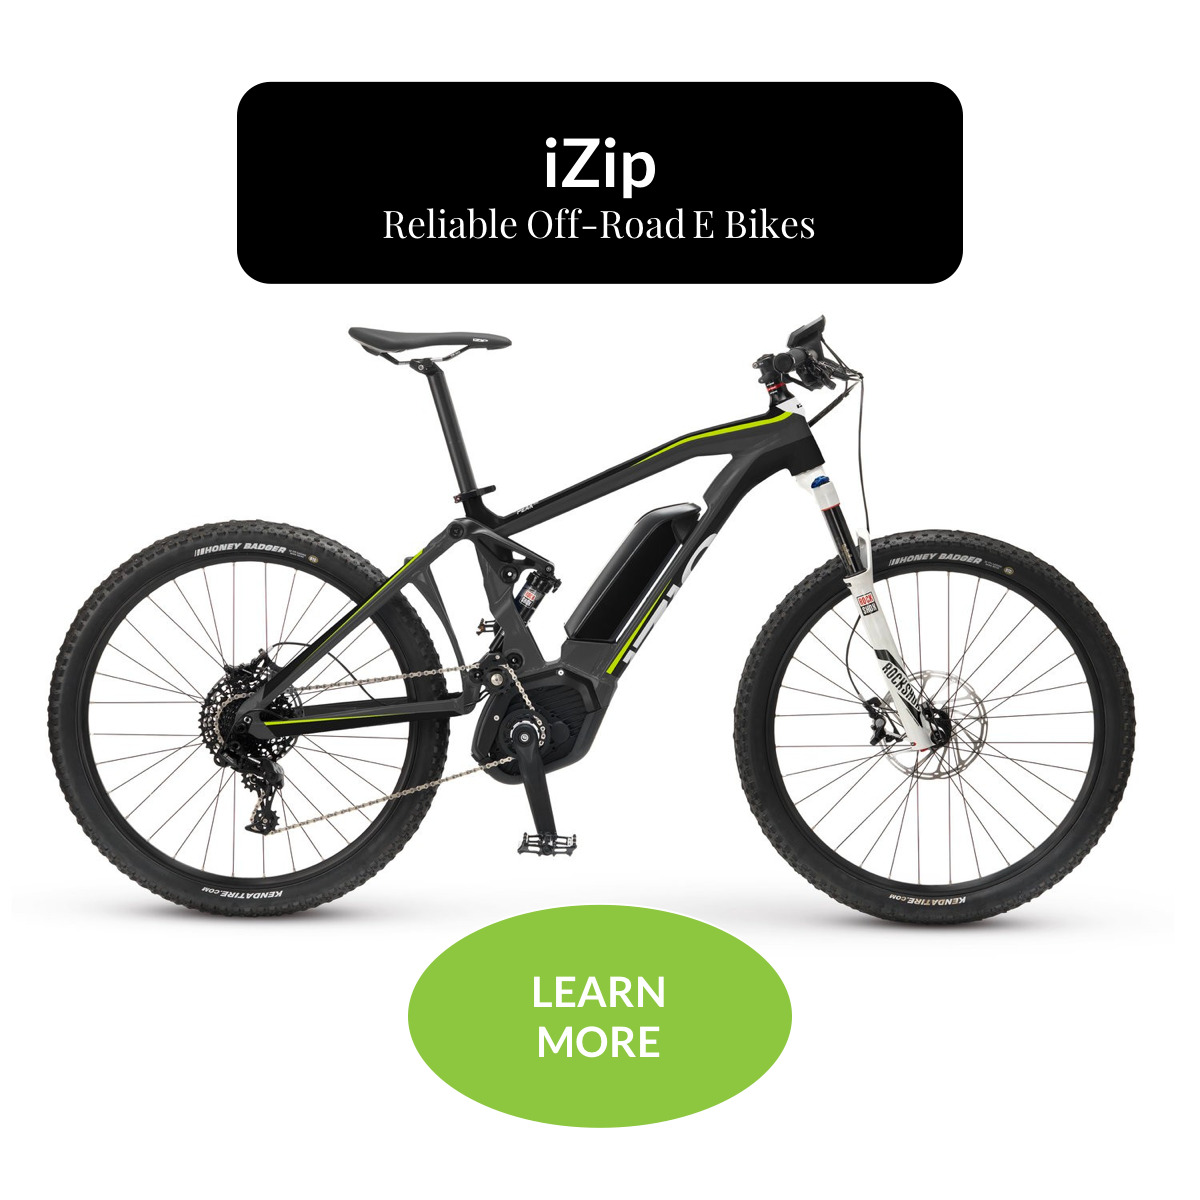 iZip Reliable Off-Road E Bikes